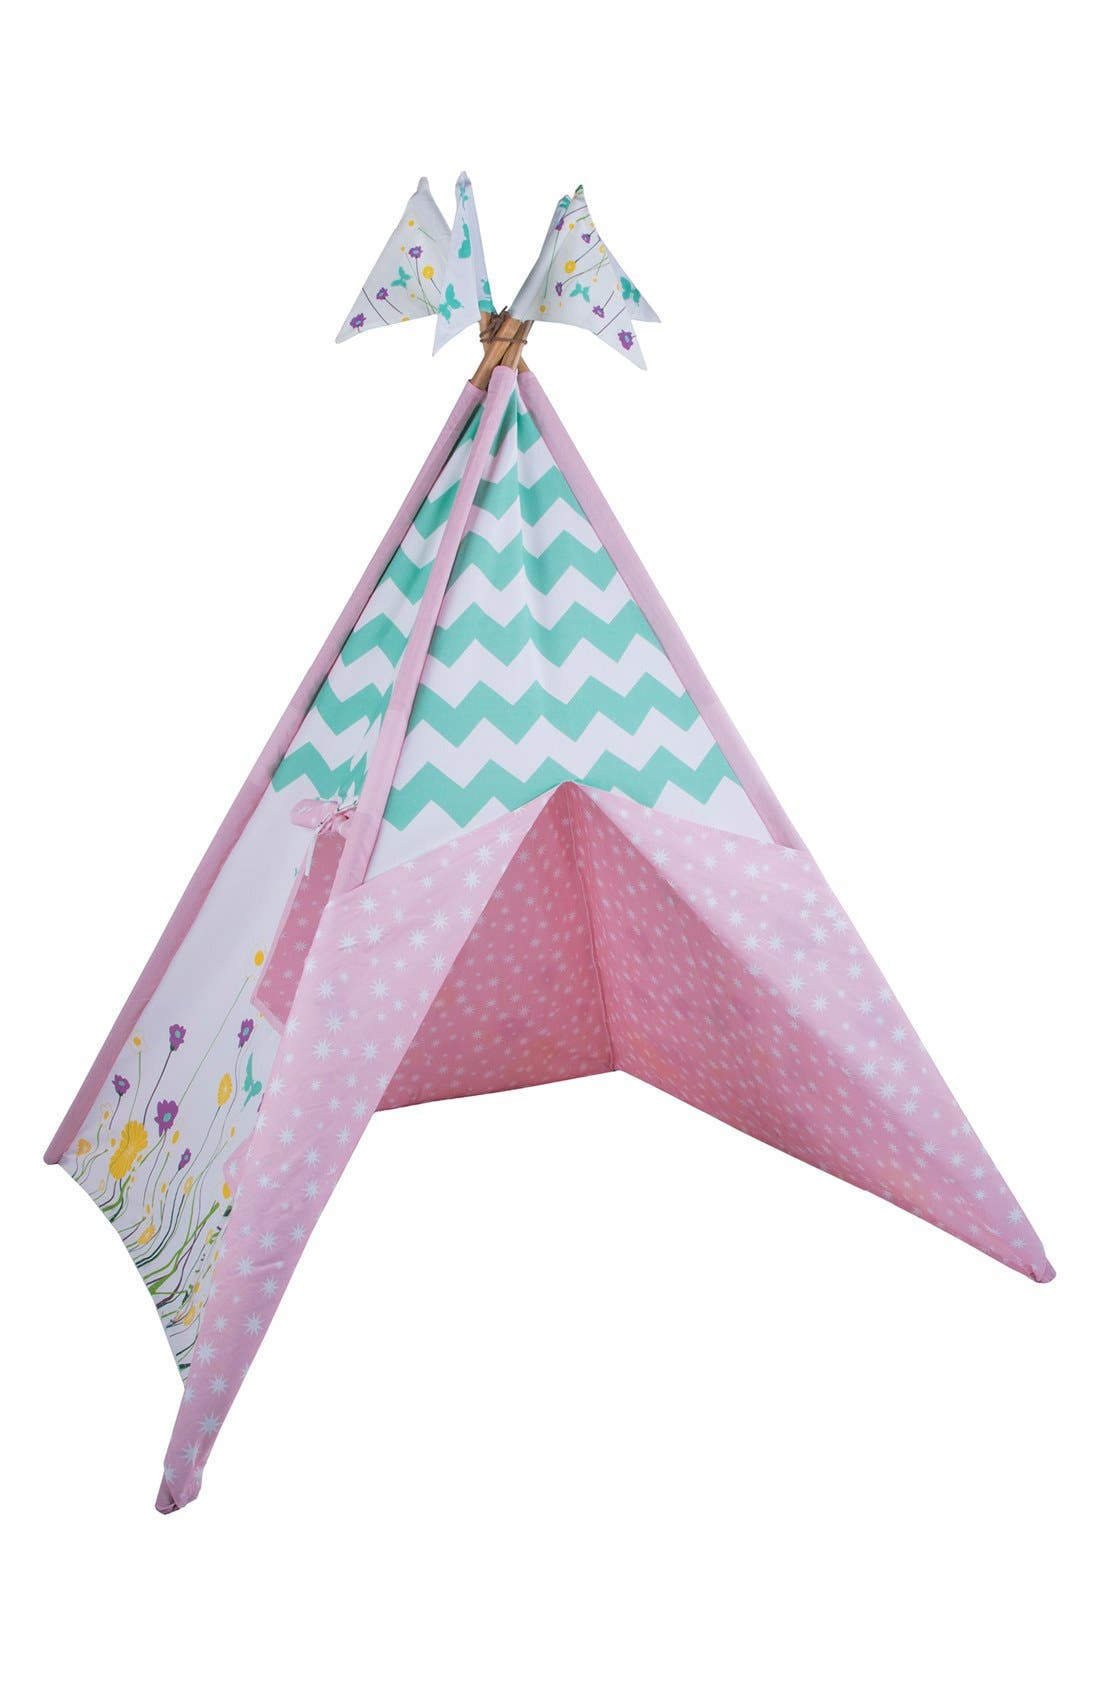 'Wildflowers' Cotton Canvas Teepee,                             Main thumbnail 1, color,                             BEIGE